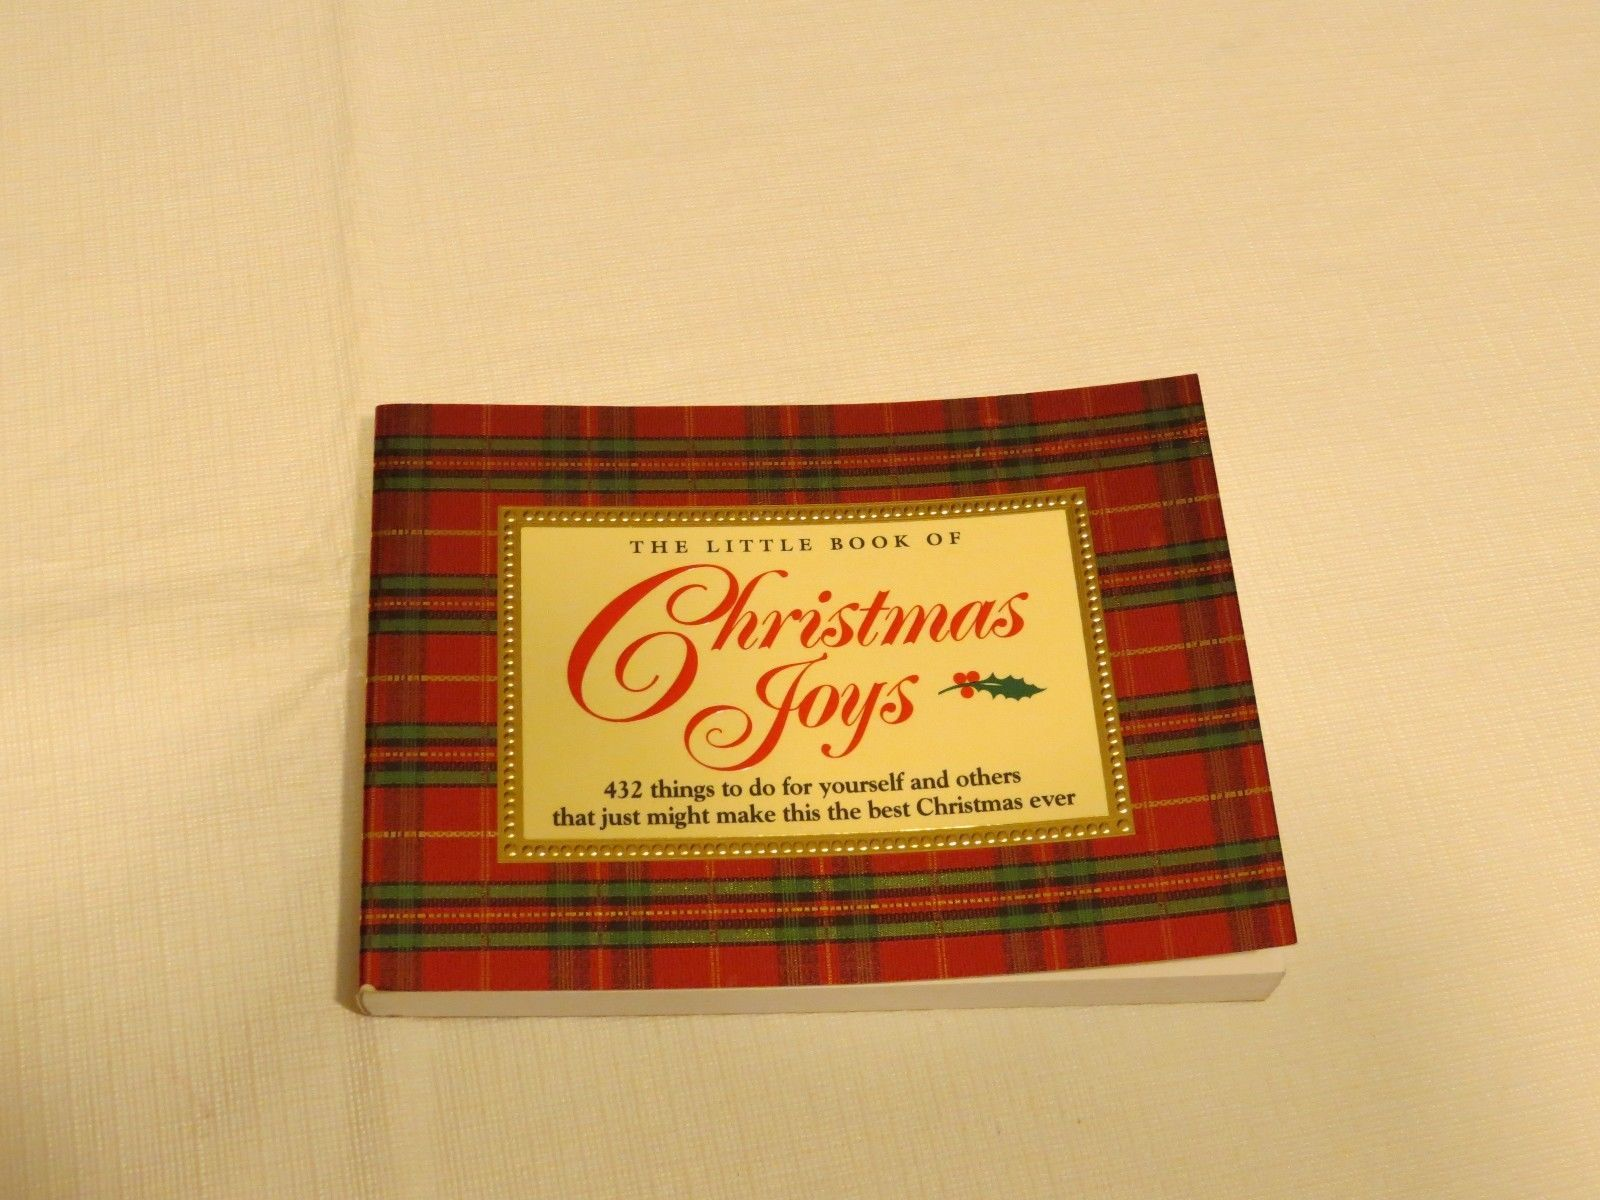 The Little Book Of Christmas Joys 432 things to do suggestions best Holidays EUC